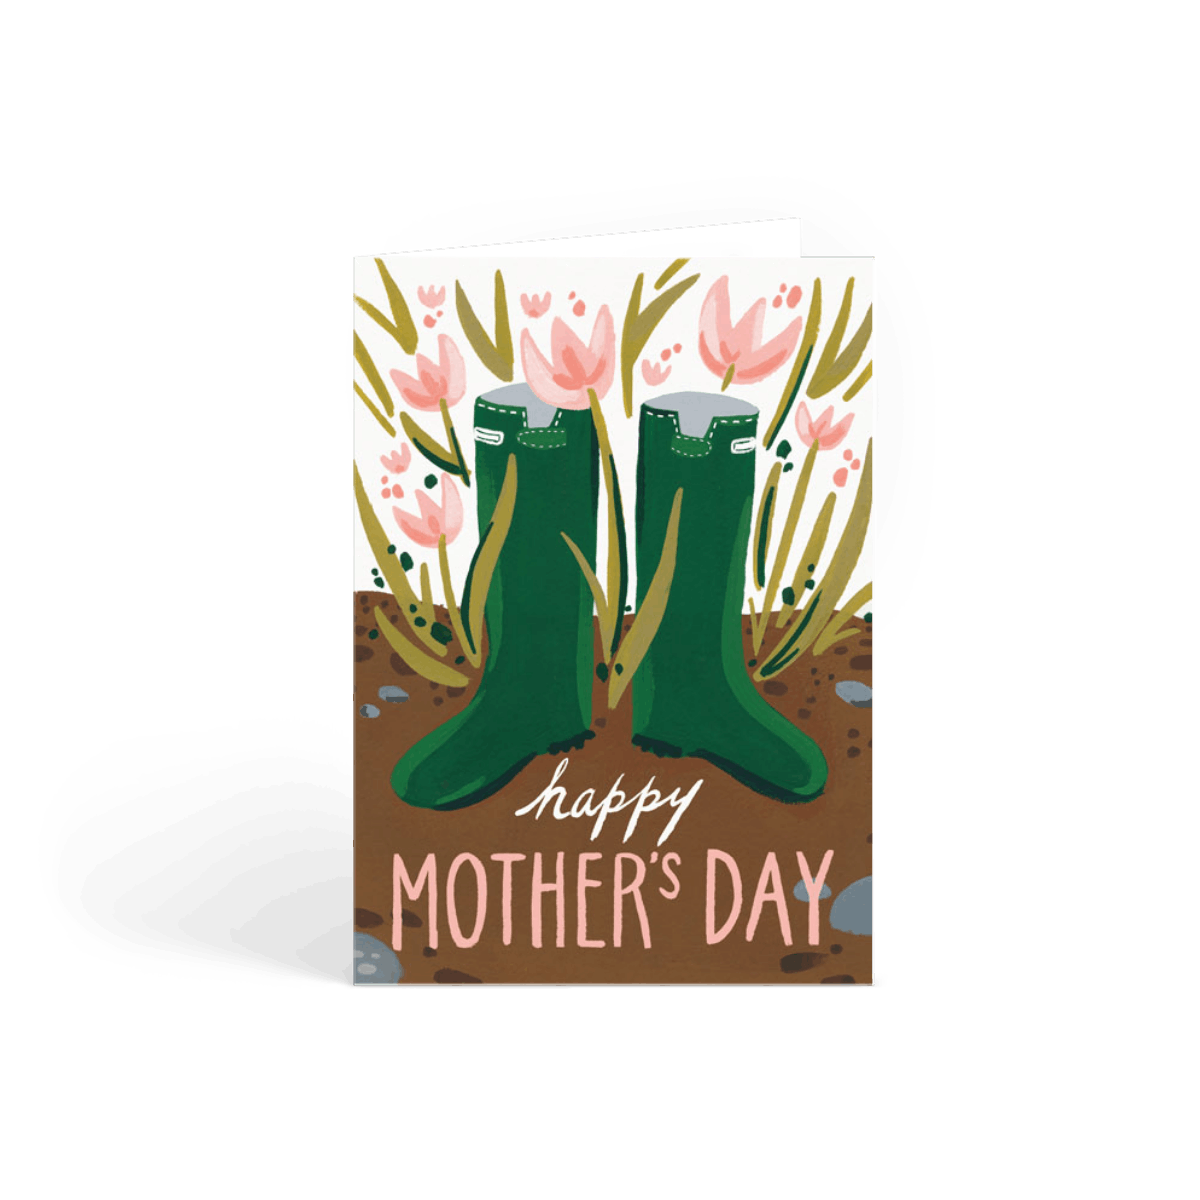 Https%3a%2f%2fwww.papier.com%2fproduct image%2f19984%2f2%2fmother s day wellies 5113 front 1488218270.png?ixlib=rb 1.1